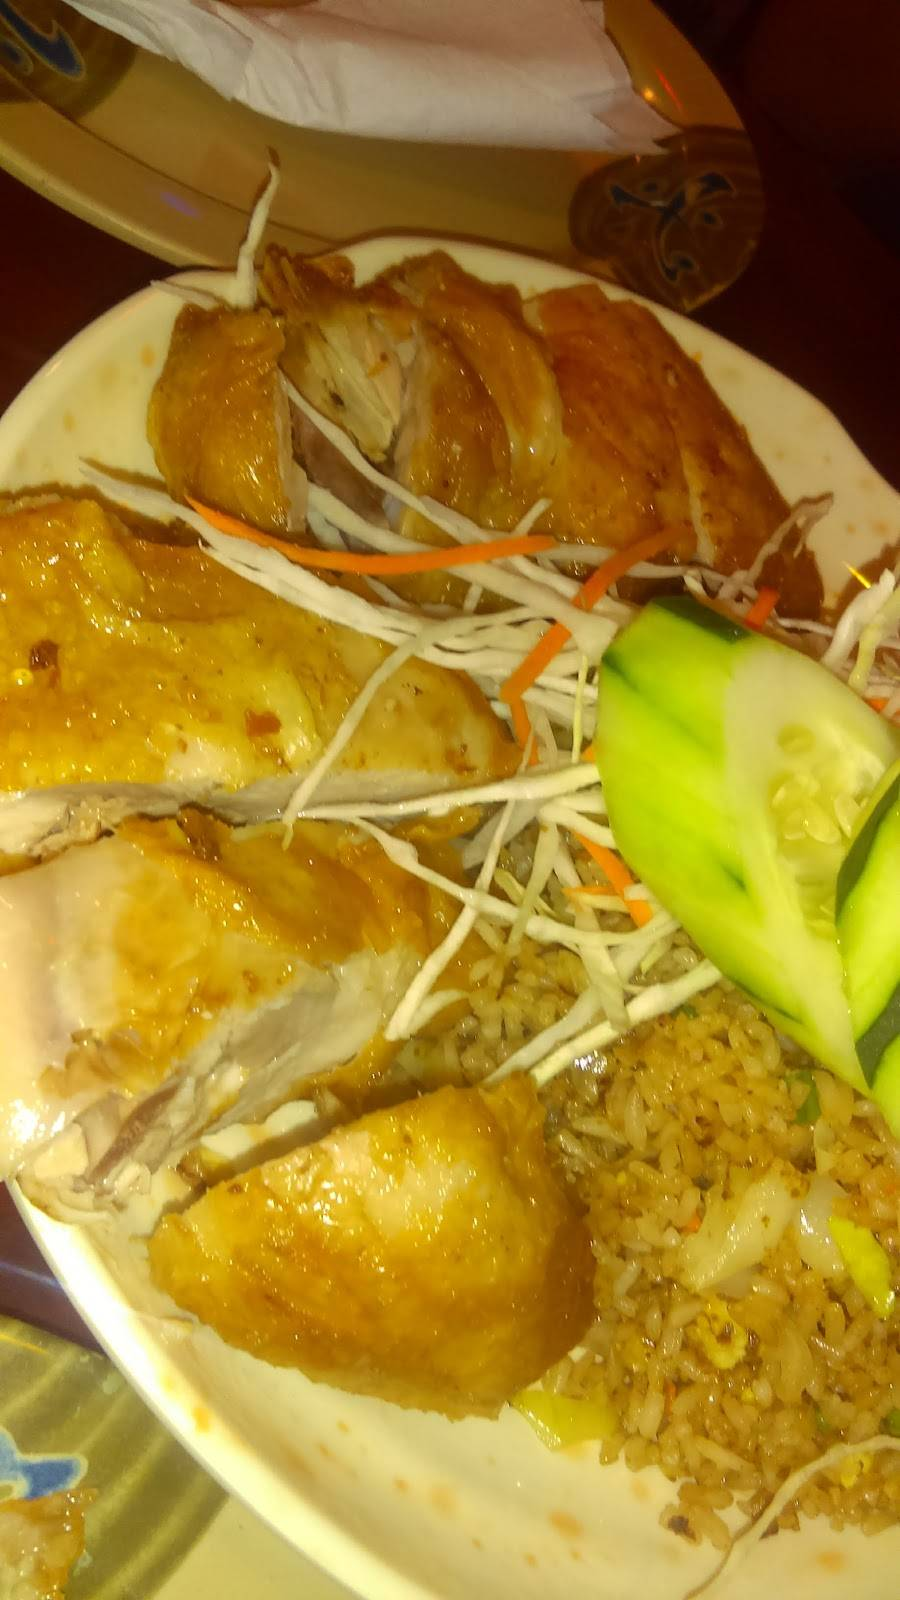 New Thriving   restaurant   12012 Liberty Ave, South Richmond Hill, NY 11419, USA   7188358888 OR +1 718-835-8888